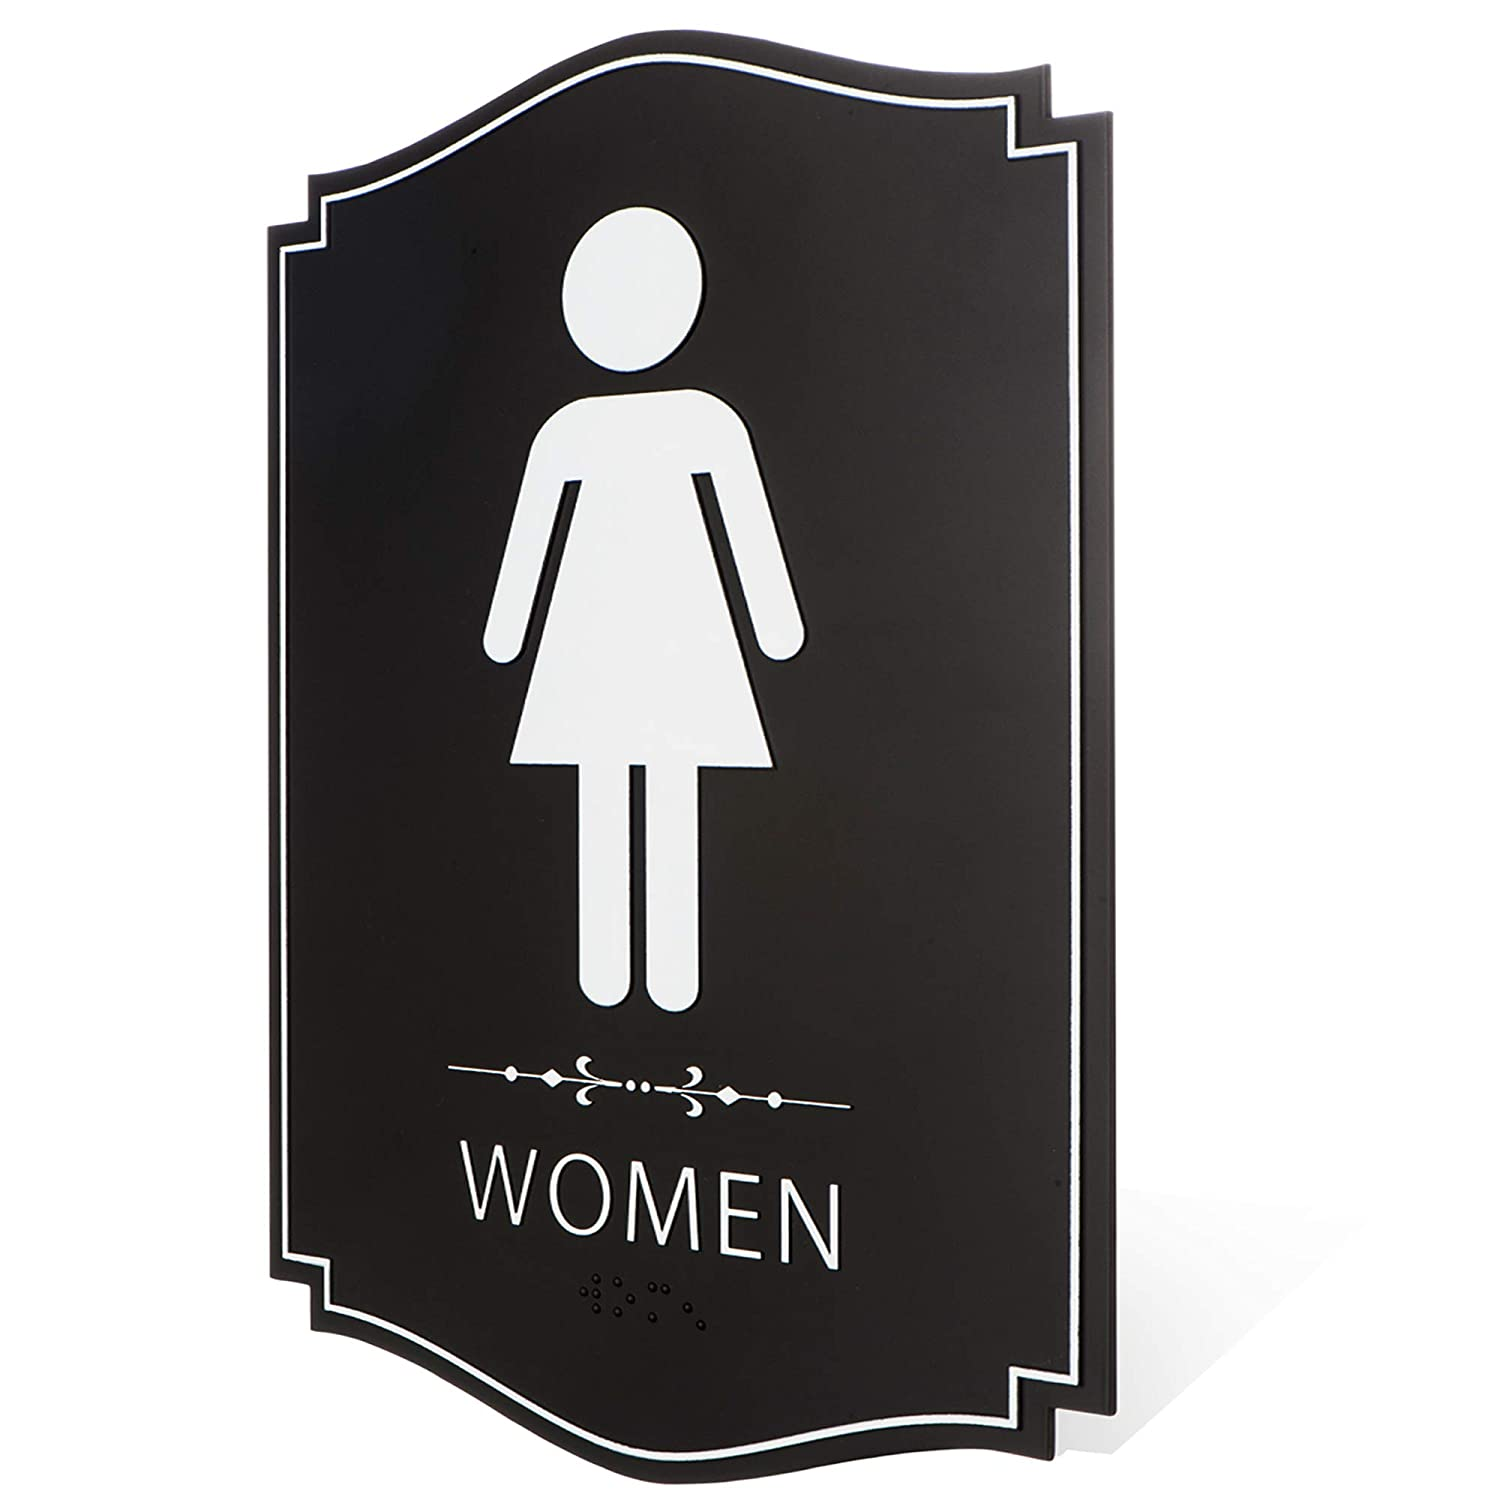 and Restaurants - ADA Compliant Braille Male /& Female Bathroom Sign with Double Sided 3M Tape for Offices Businesses Gender Neutral Unisex//Handicap Men//Women Modern Family Restroom Sign 9x 63pk